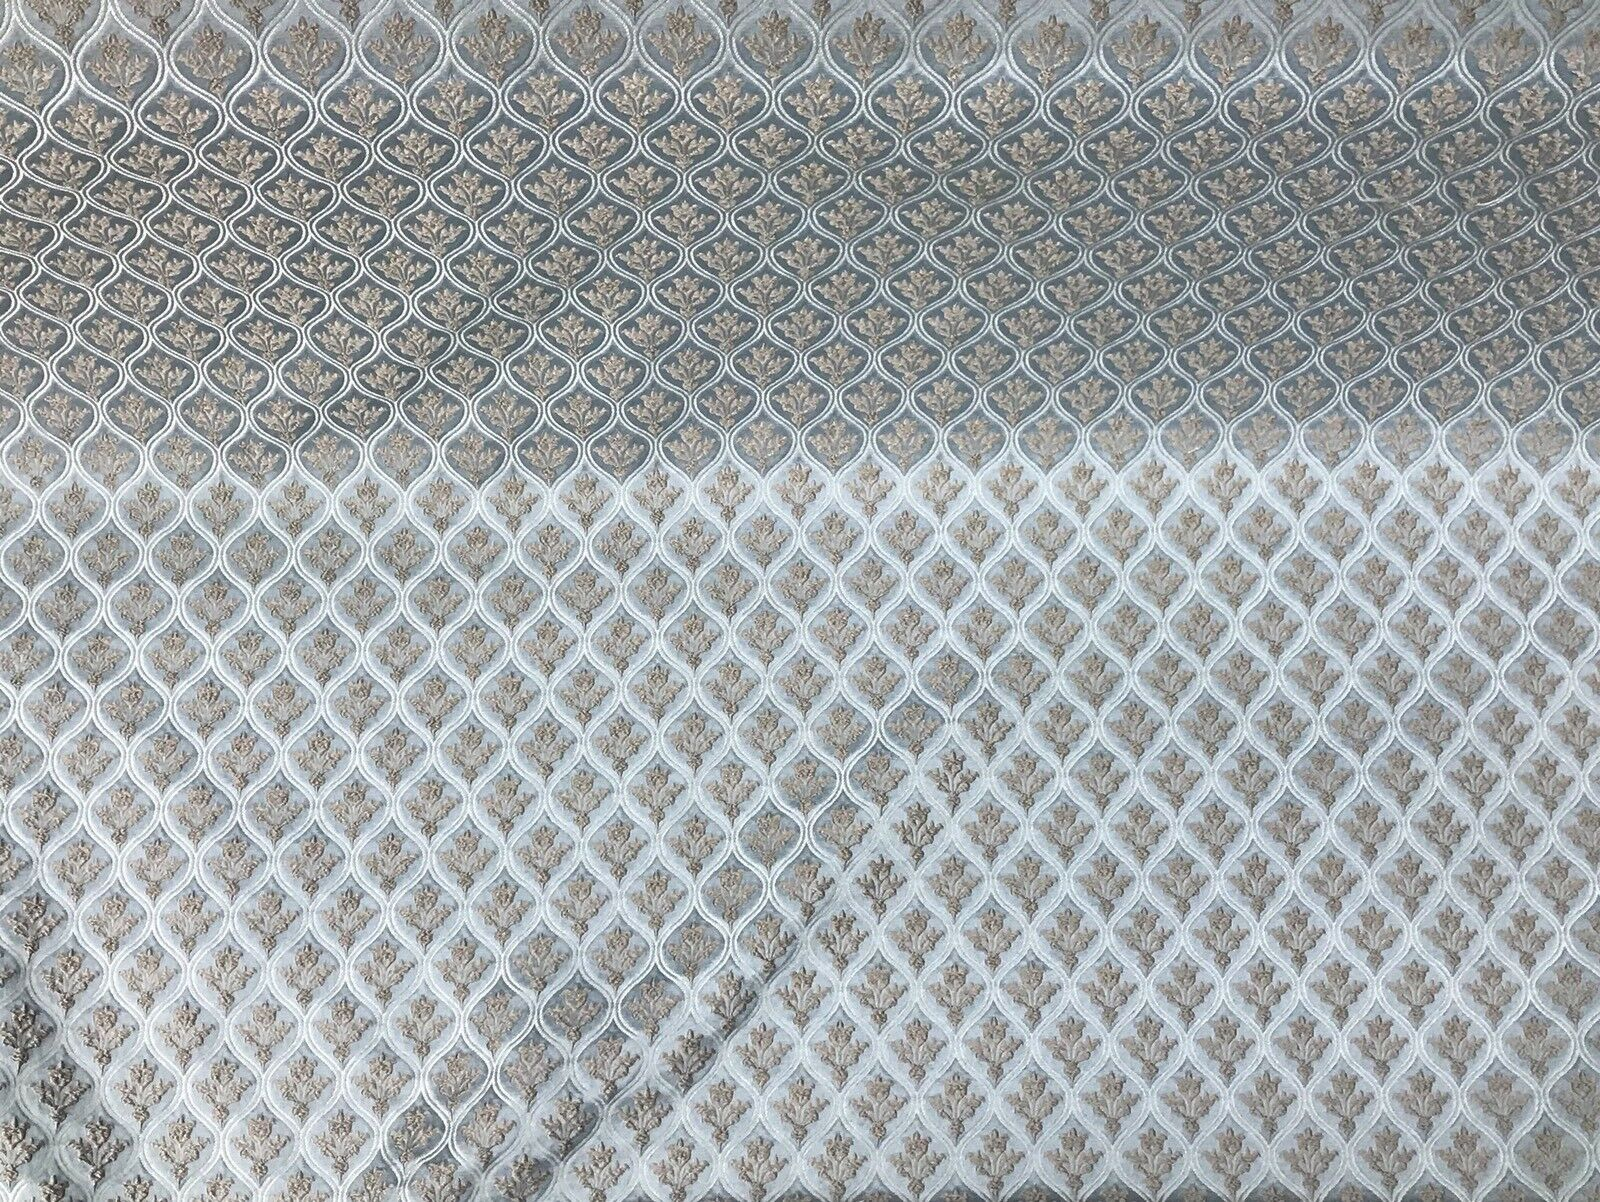 NEW  Eggshell Silver Blue Satin Brocade Upholstery Fabric GFPBB0001